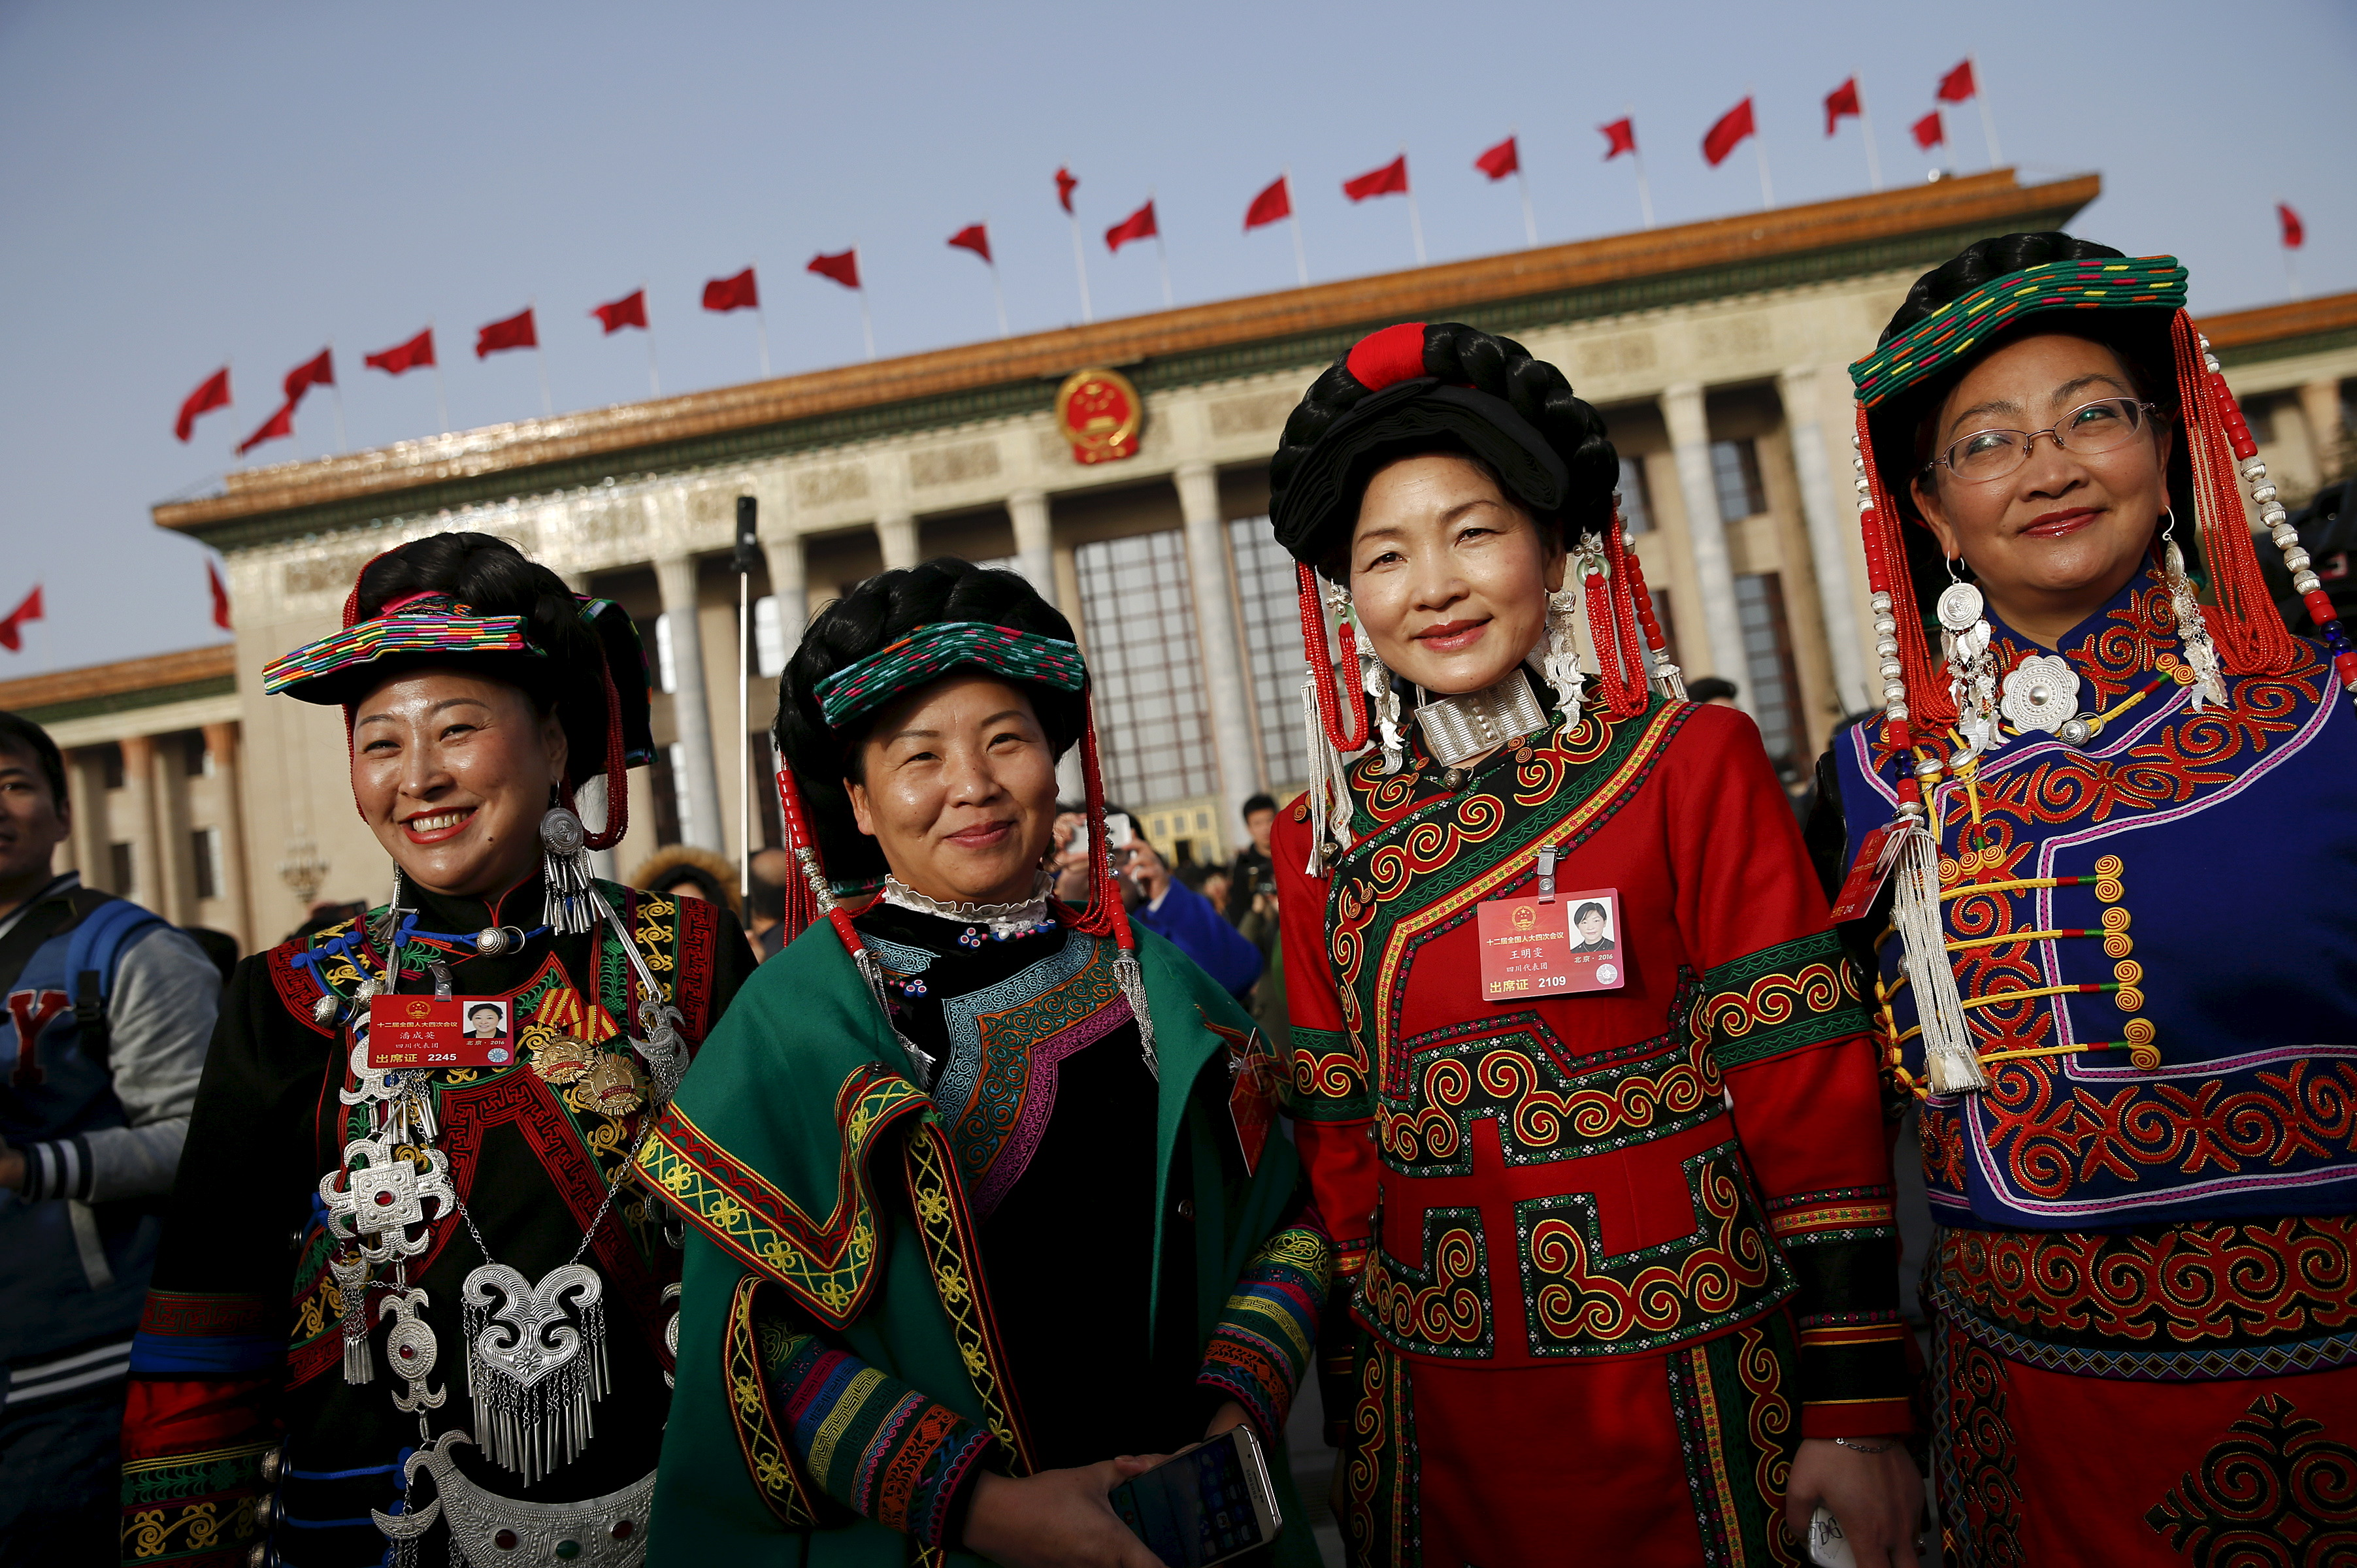 Ethnic minority delegates pose for pictures outside the Great Hall of the People ahead of the opening session of the National People's Congress in Beijing on March 5, 2016